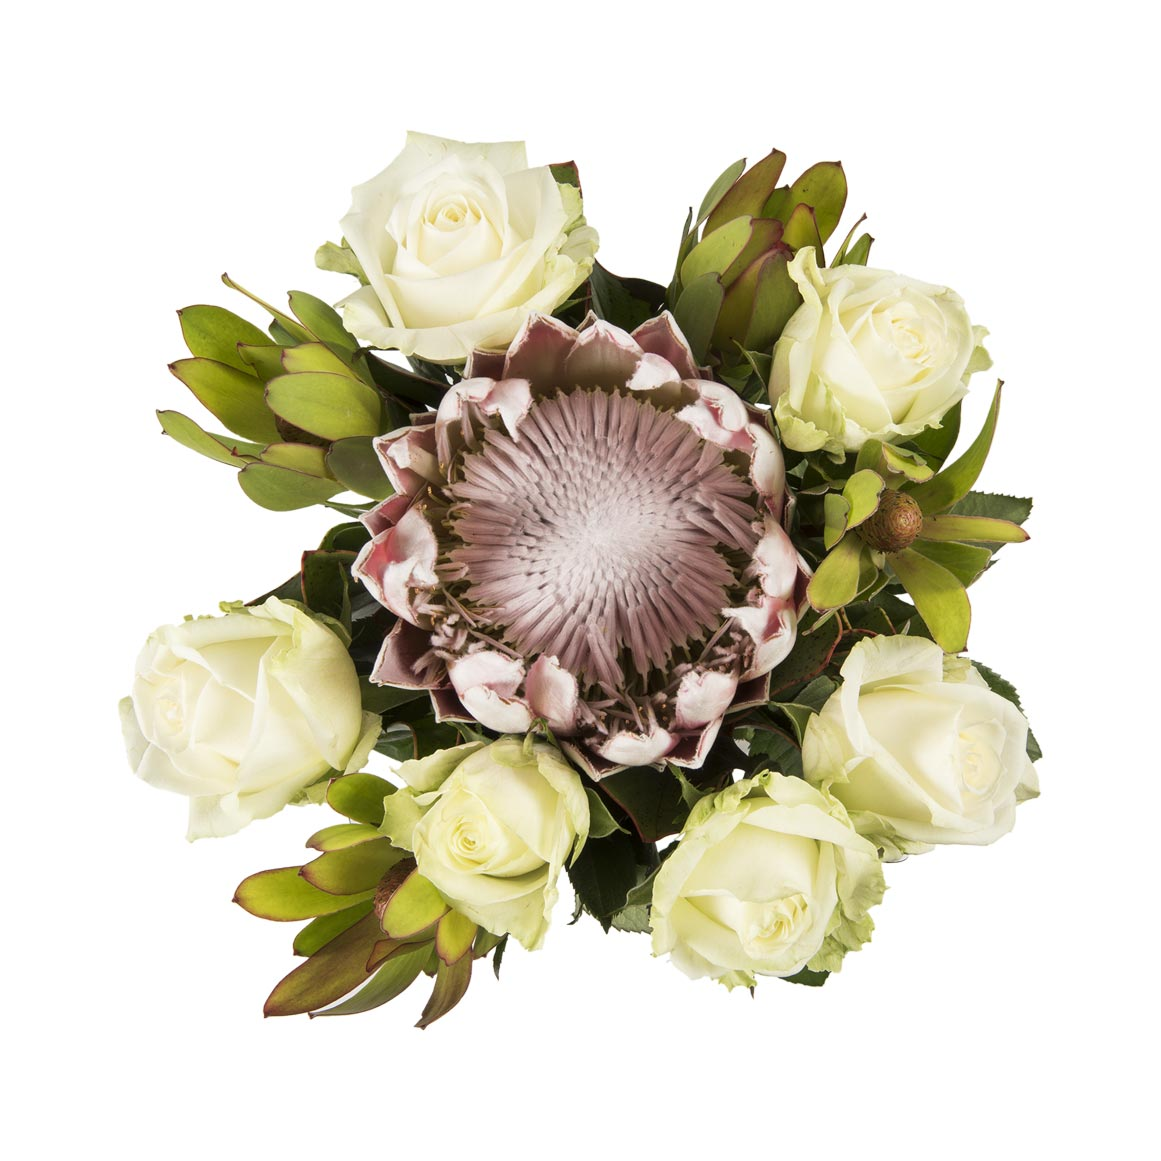 Rose Protea Bouquet Woolworths